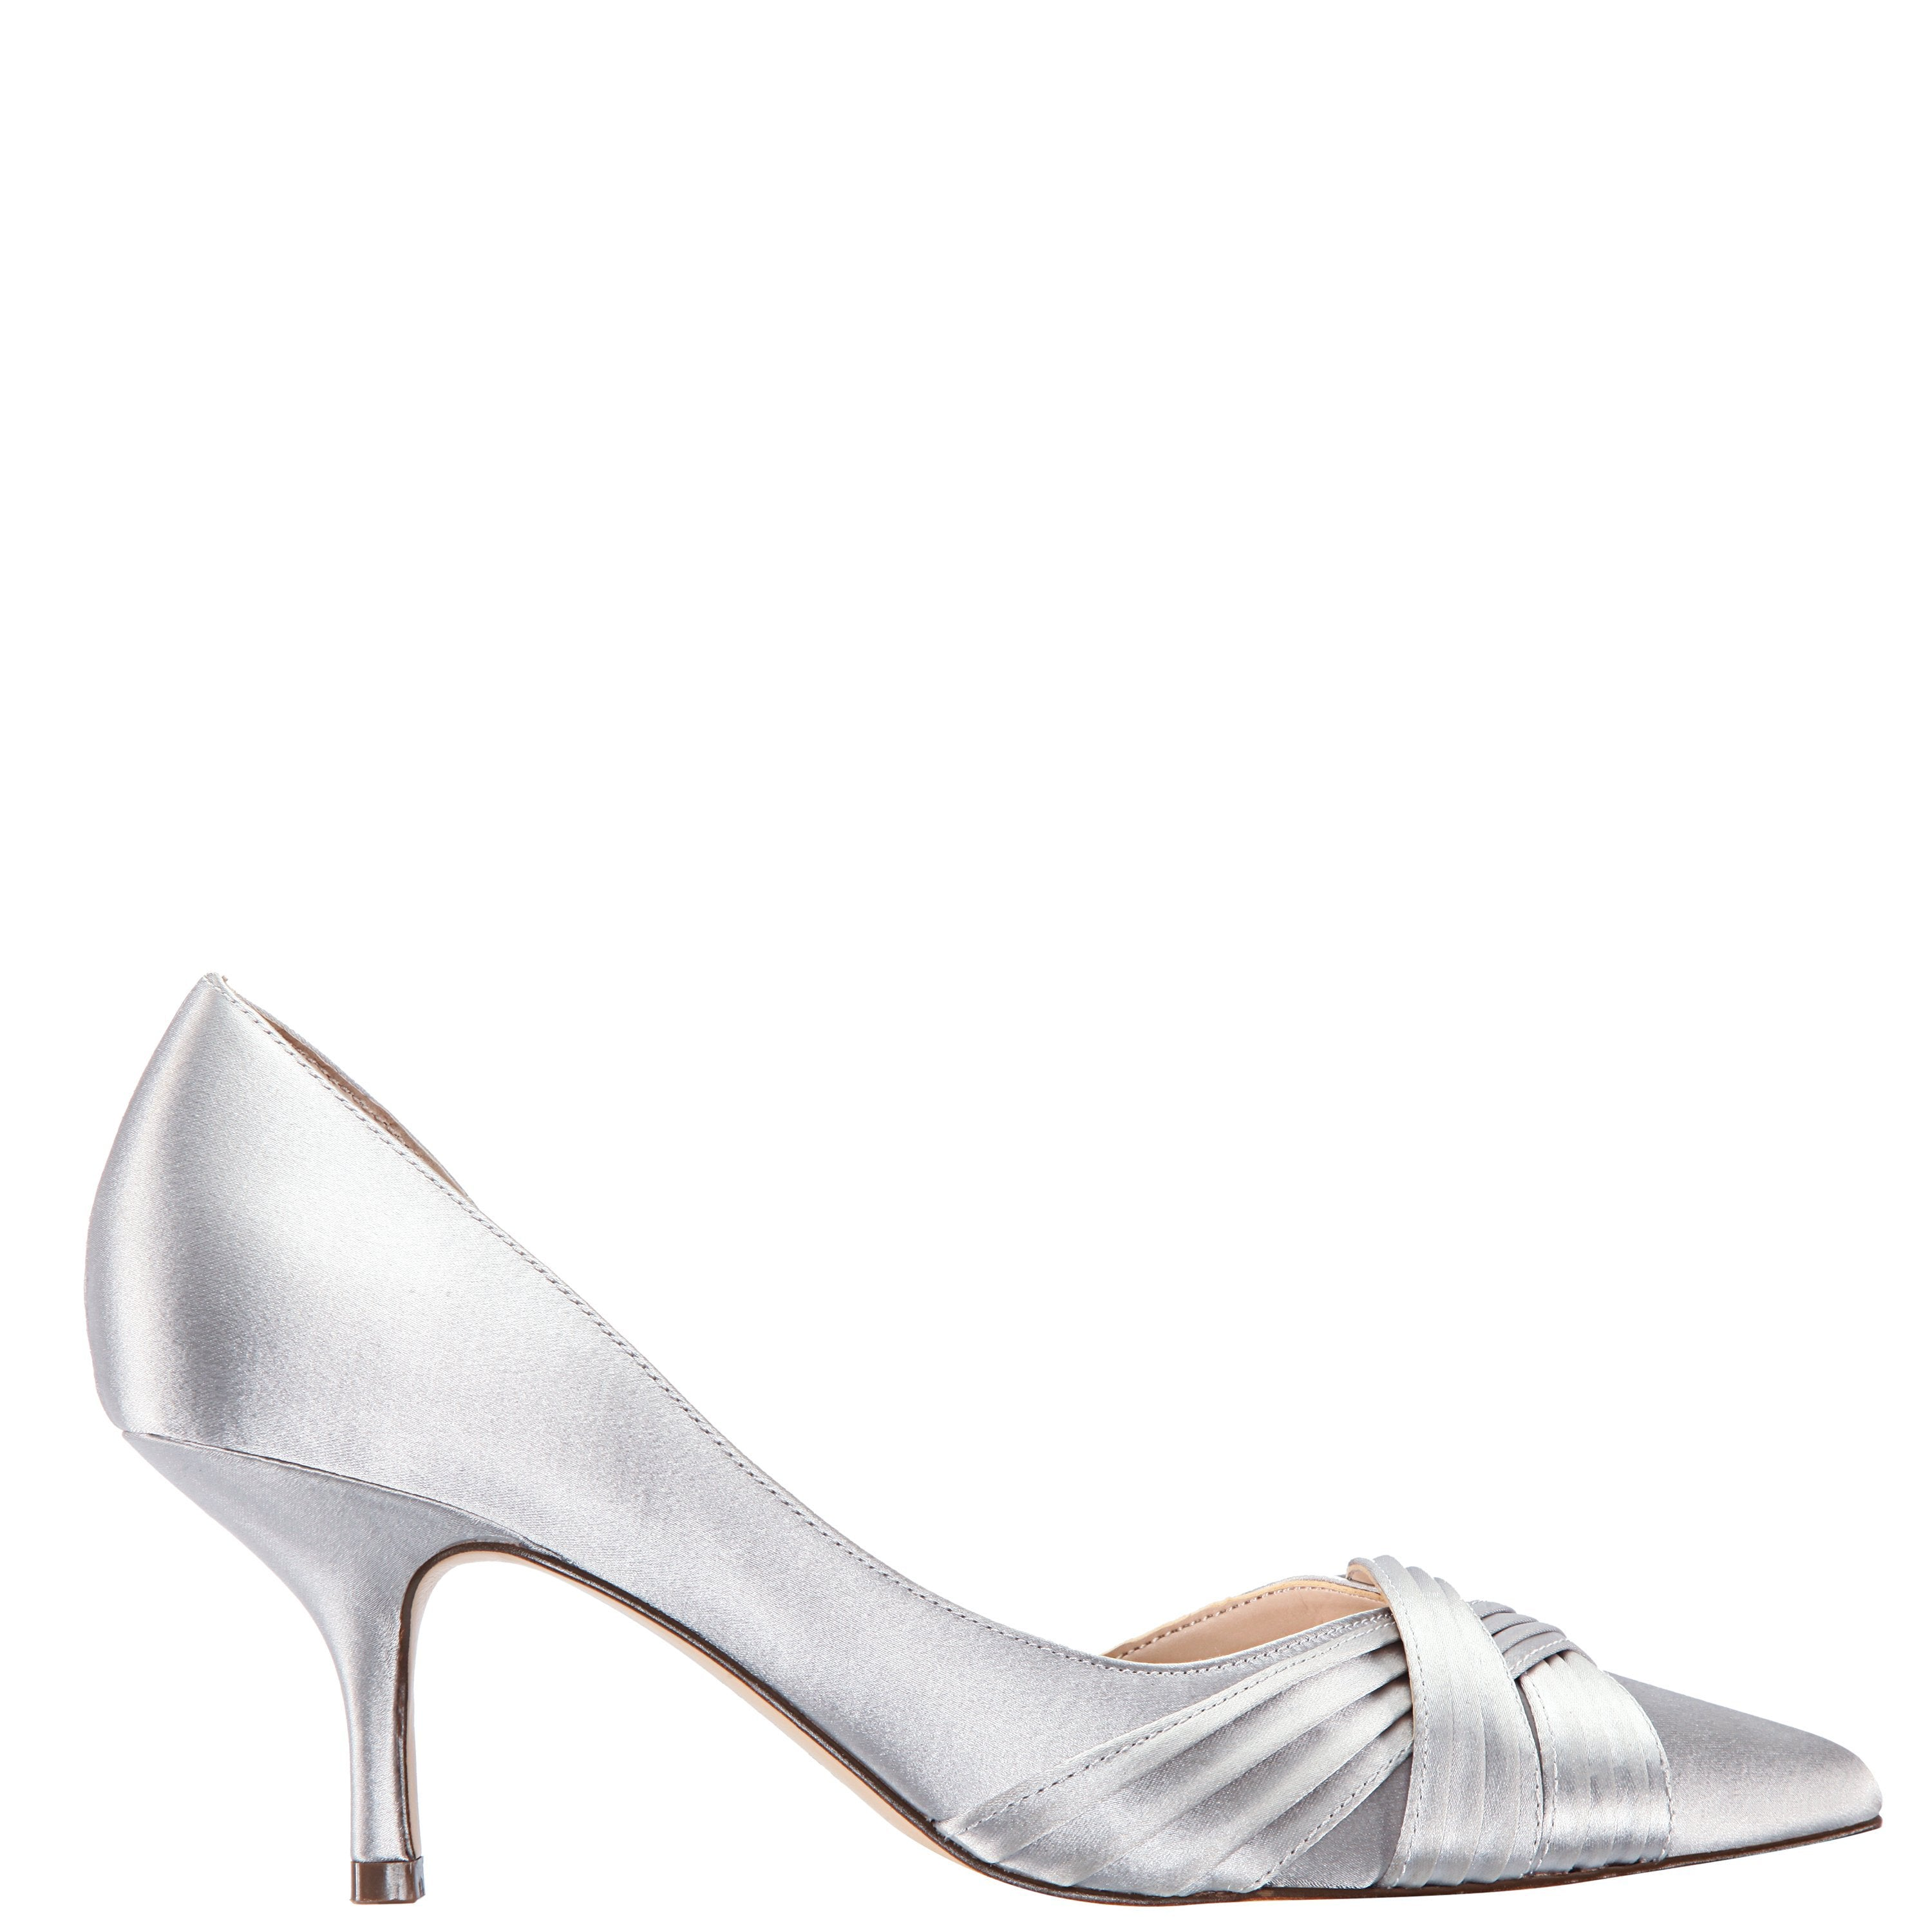 BLAKELY-NEW SILVER SATIN - NEW SILVER